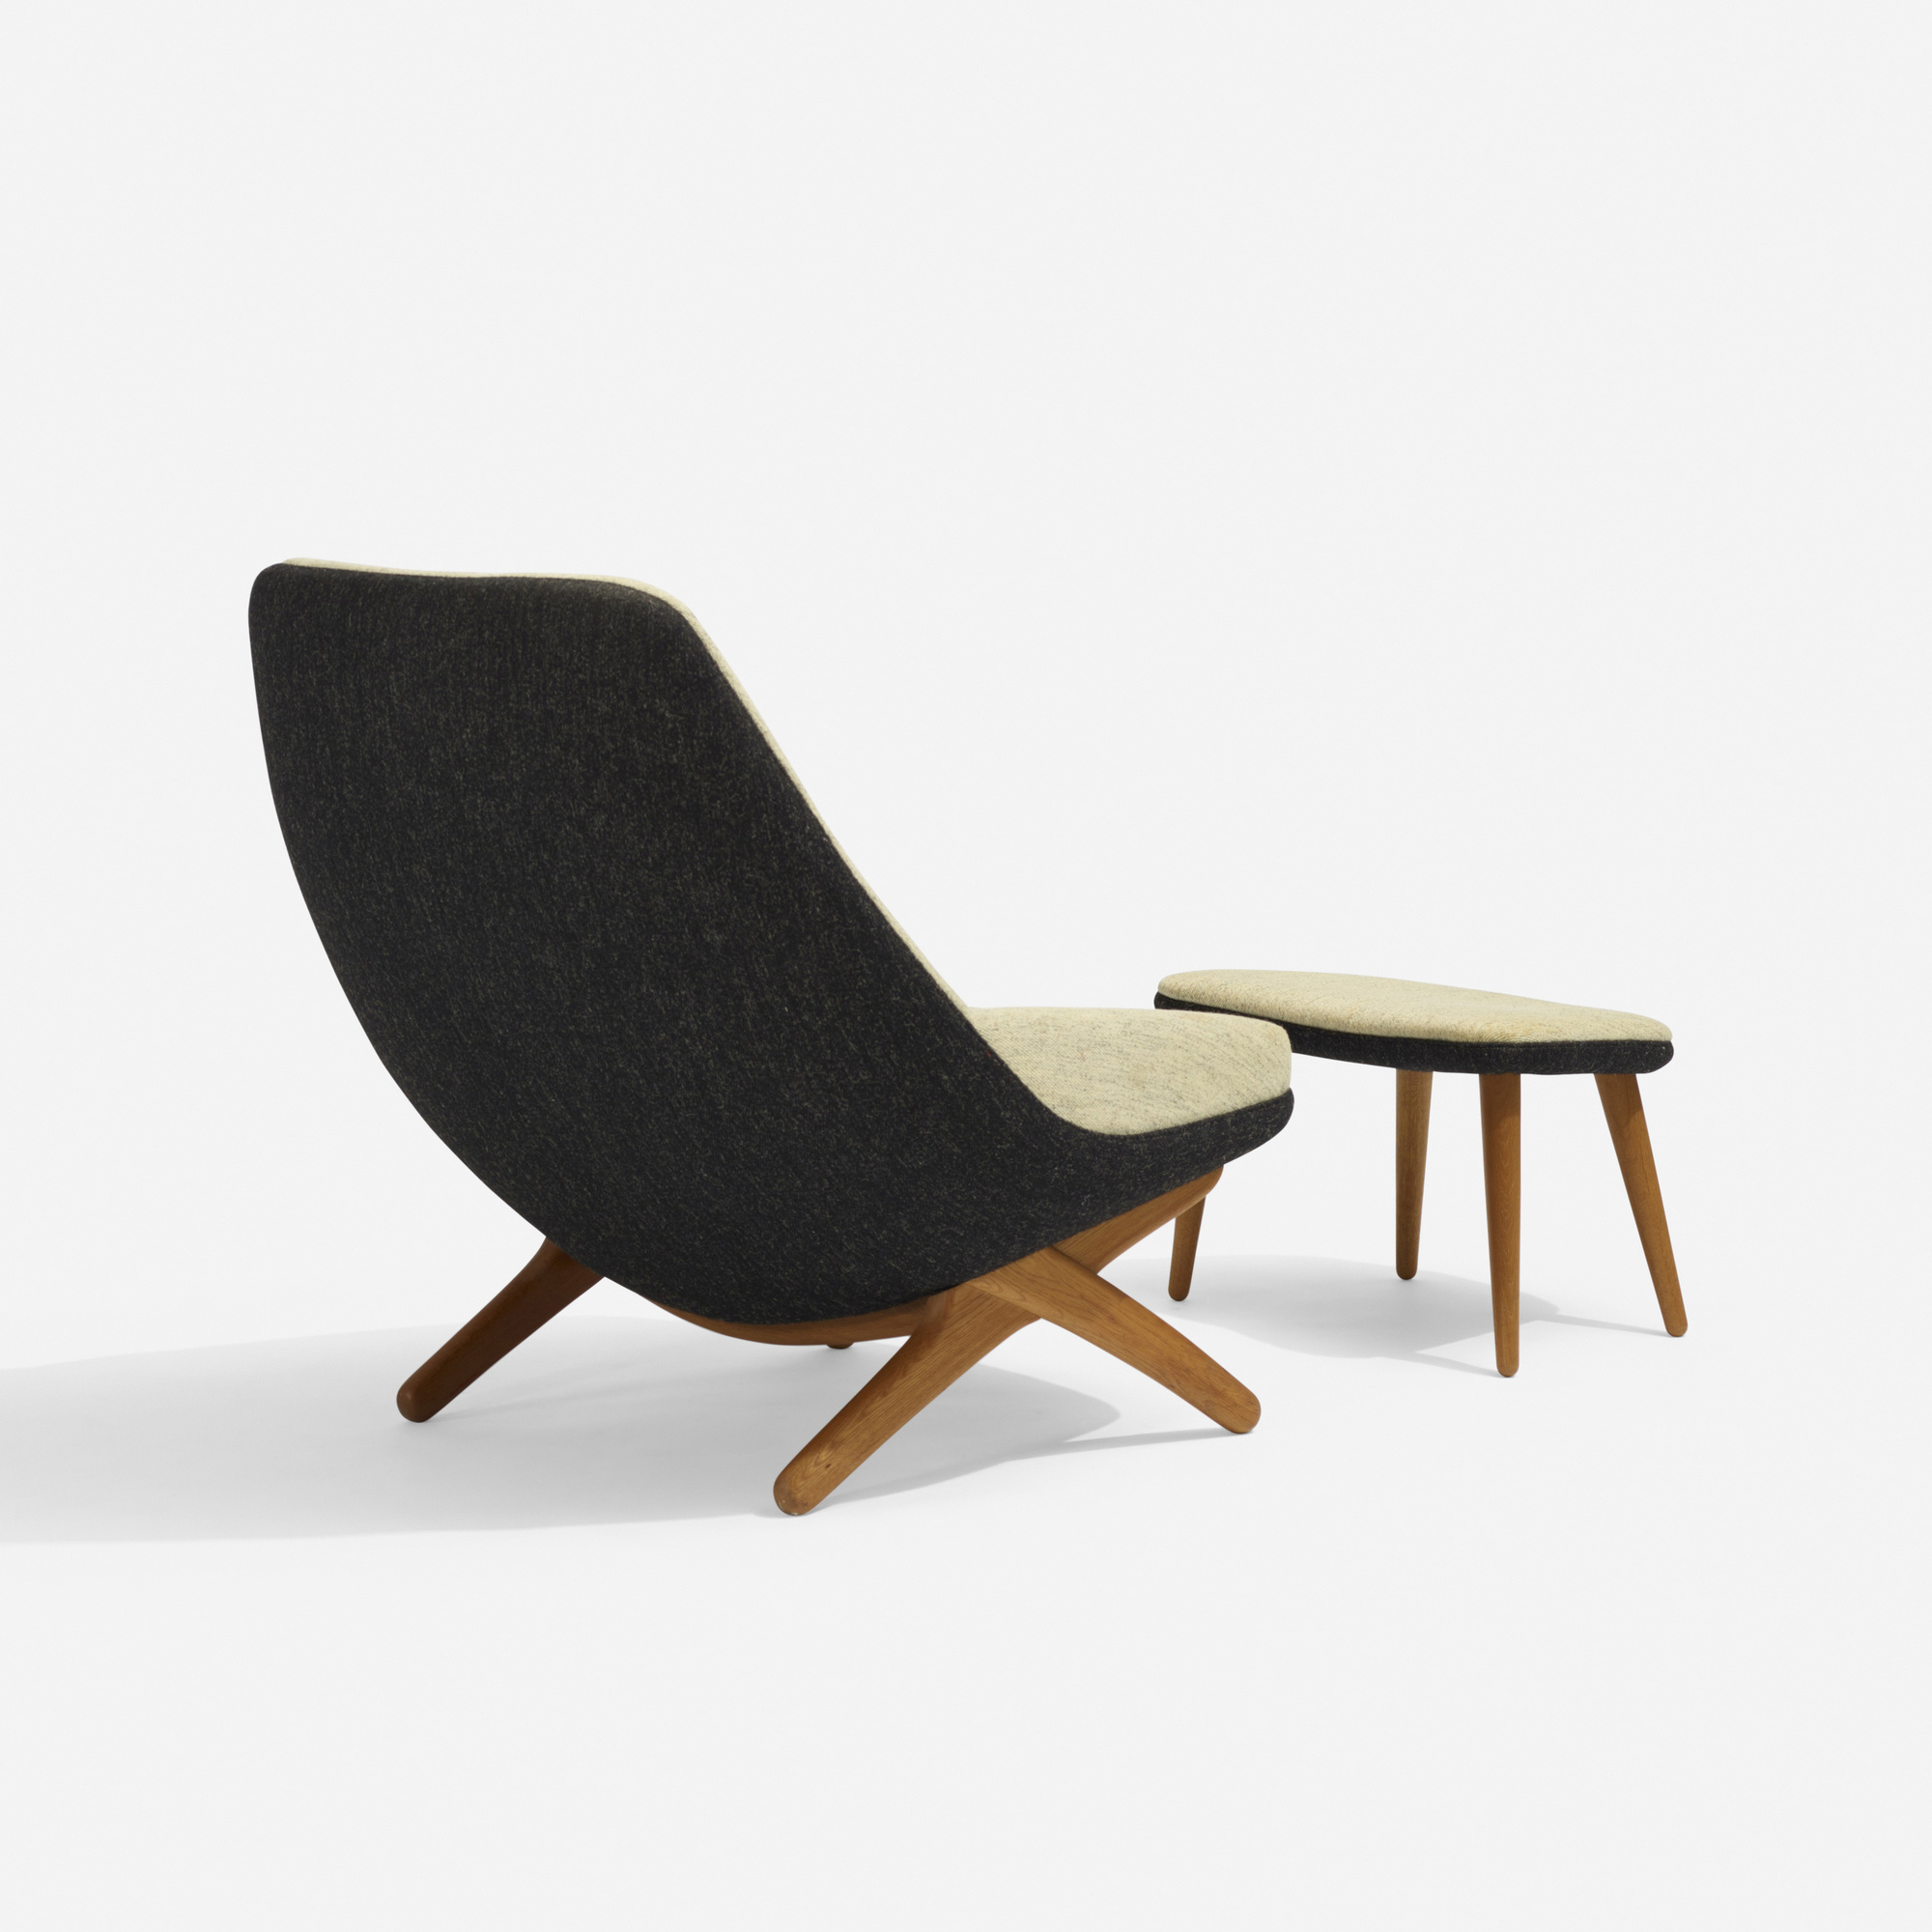 279: Illum Wikkelsø / lounge chair, model 91 and ottoman (3 of 3)